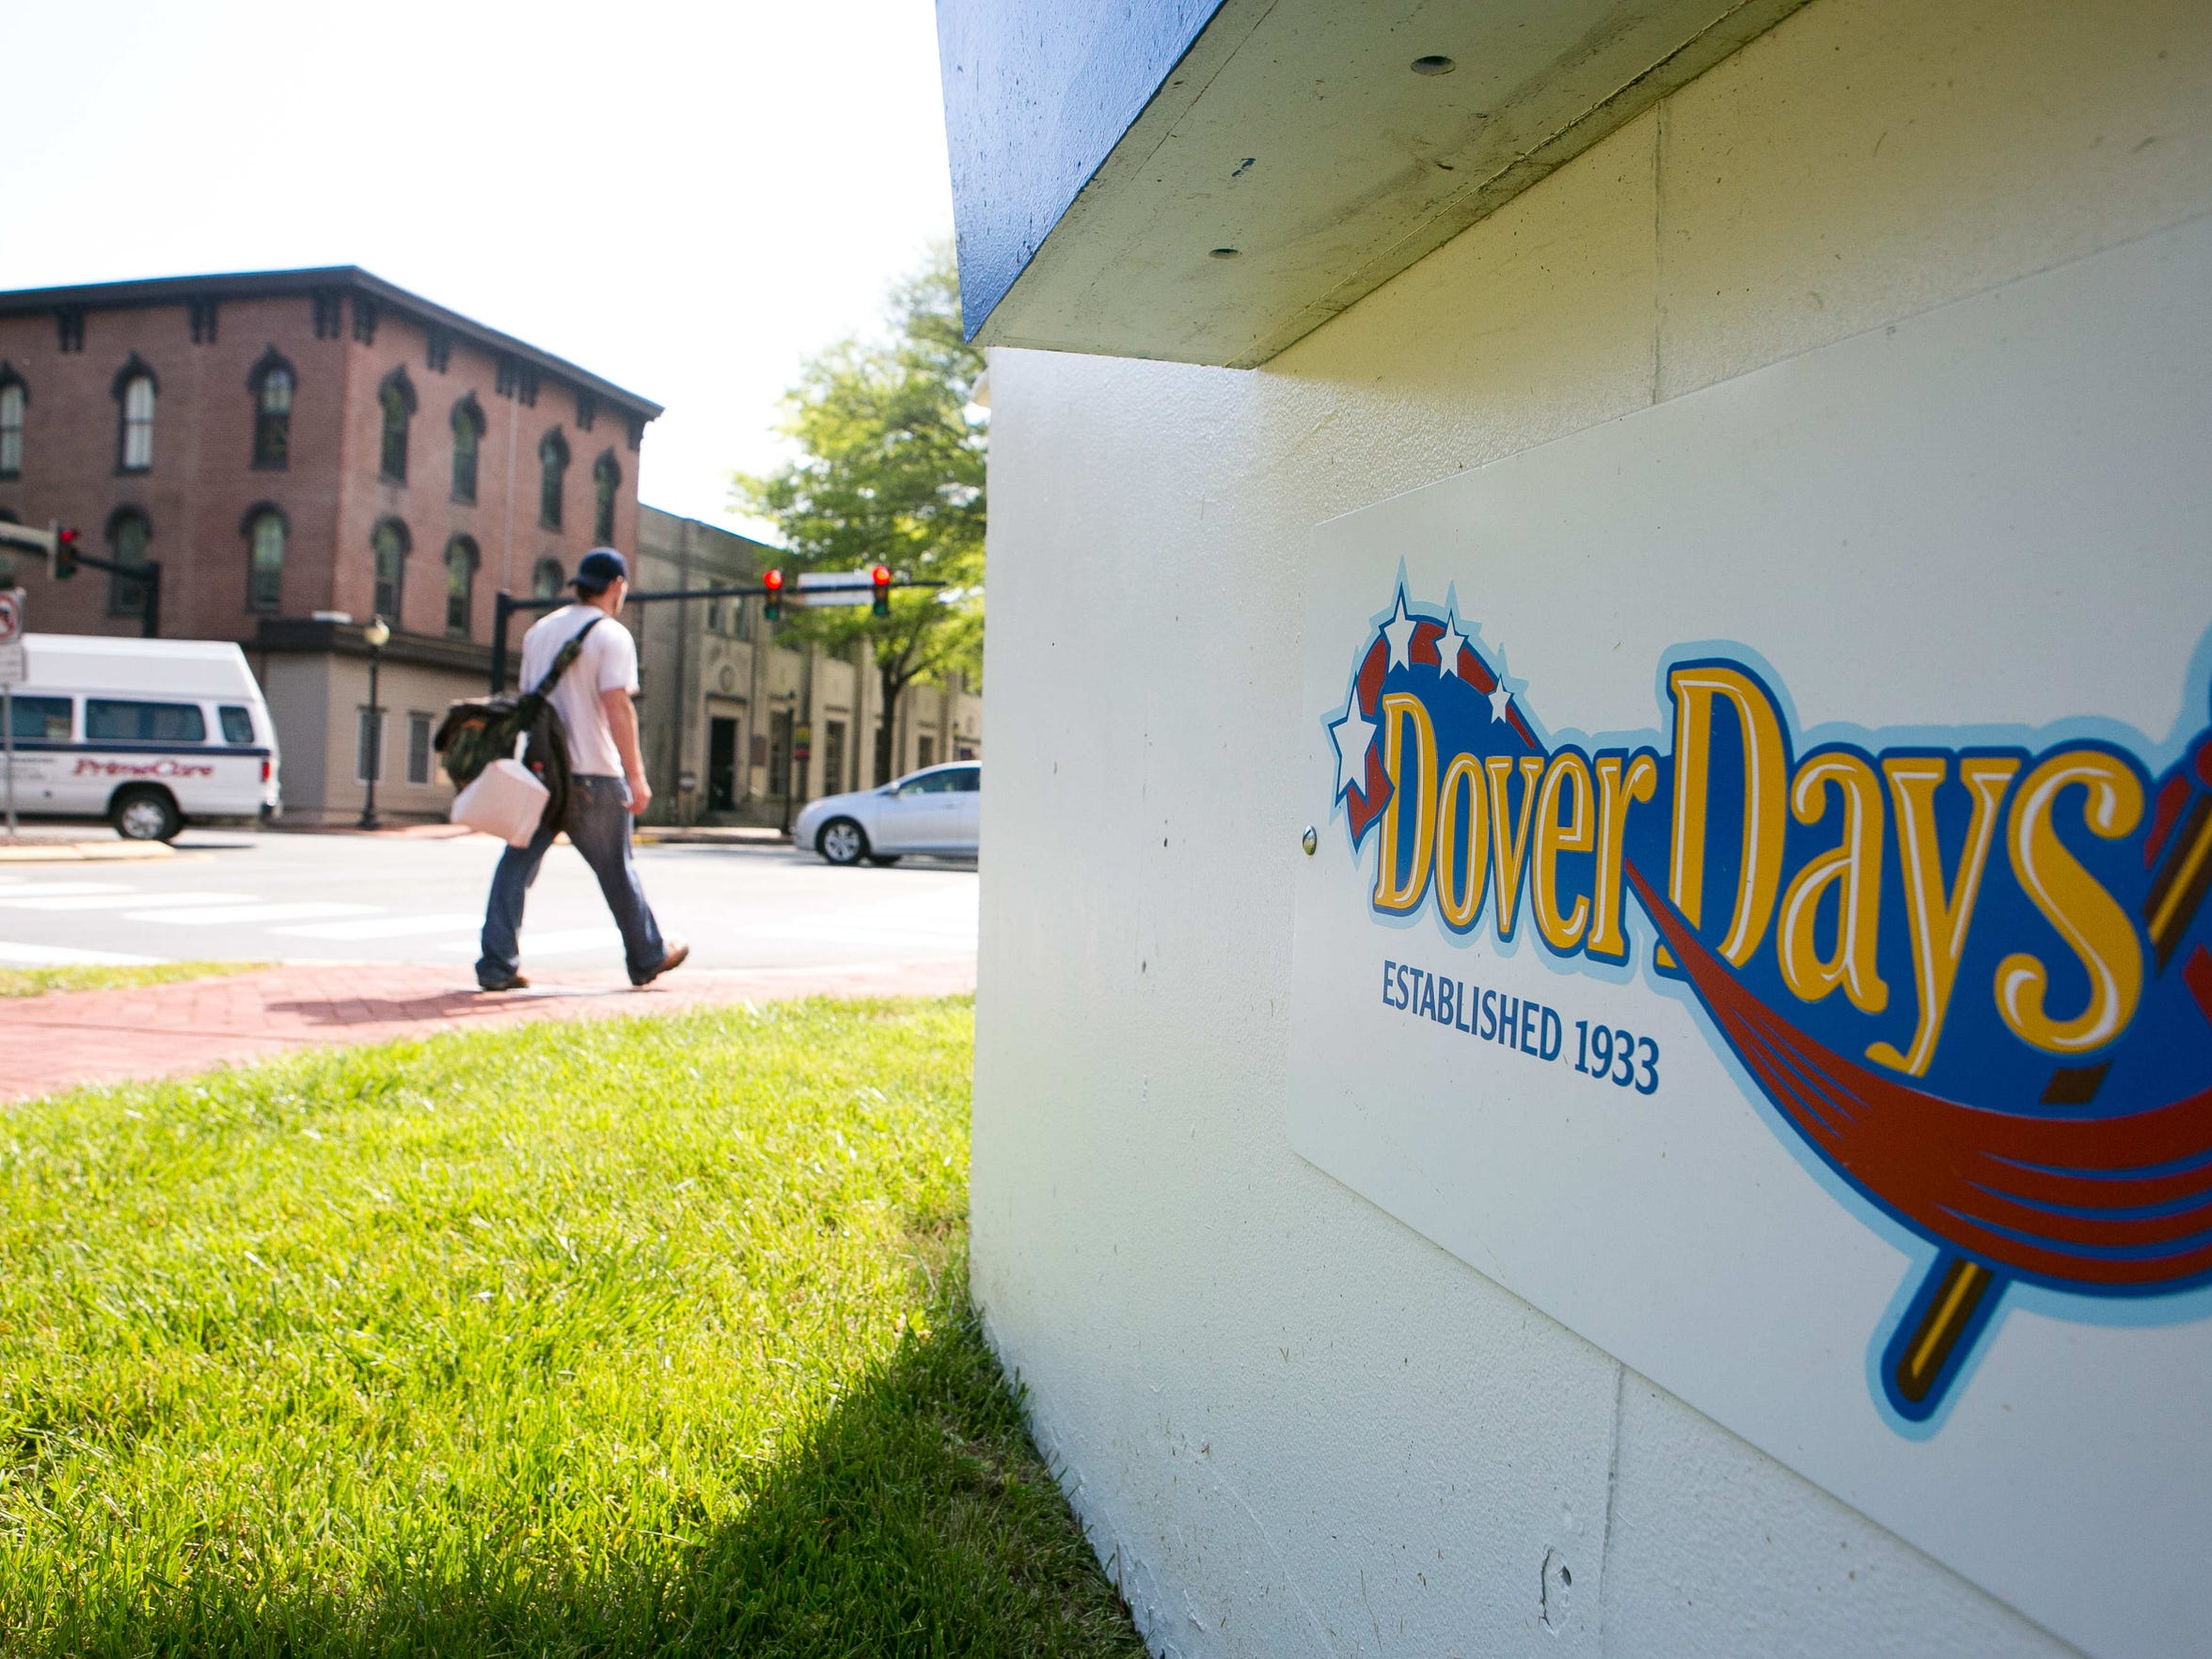 A pedestrian walks along Loockerman Street and South State Street in Dover. Heavy traffic is expected this weekend in Dover, with Vice President Joe Biden delivering the keynote address at the Delaware State University graduation, Wesley College having its commencement ceremony and Dover Days celebration being held.